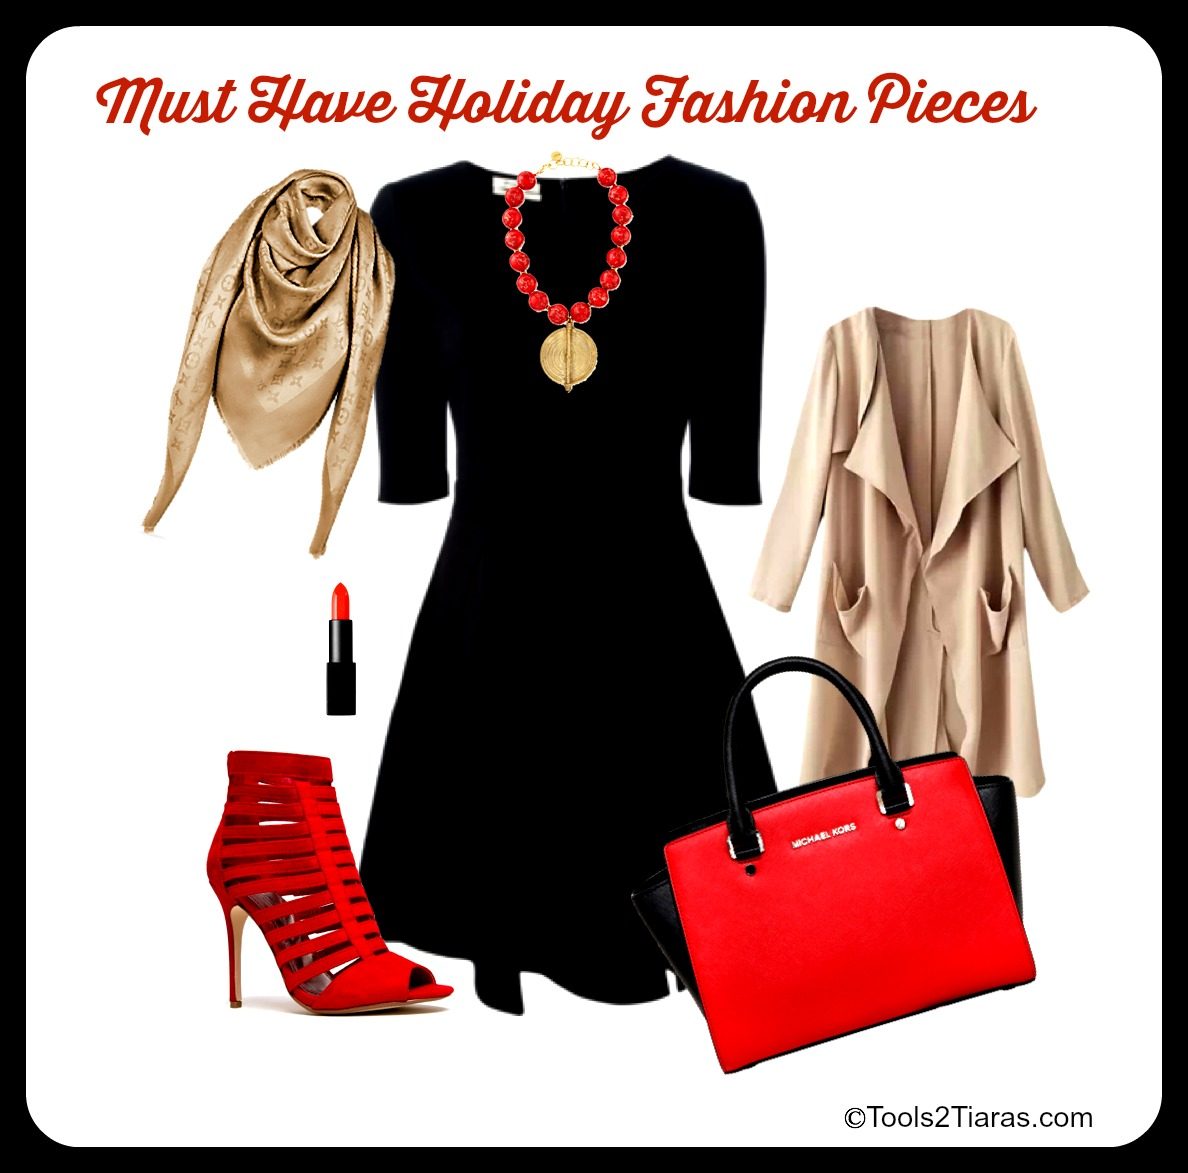 Tools 2 Tiaras: Staple Holiday Fashion You Must Have